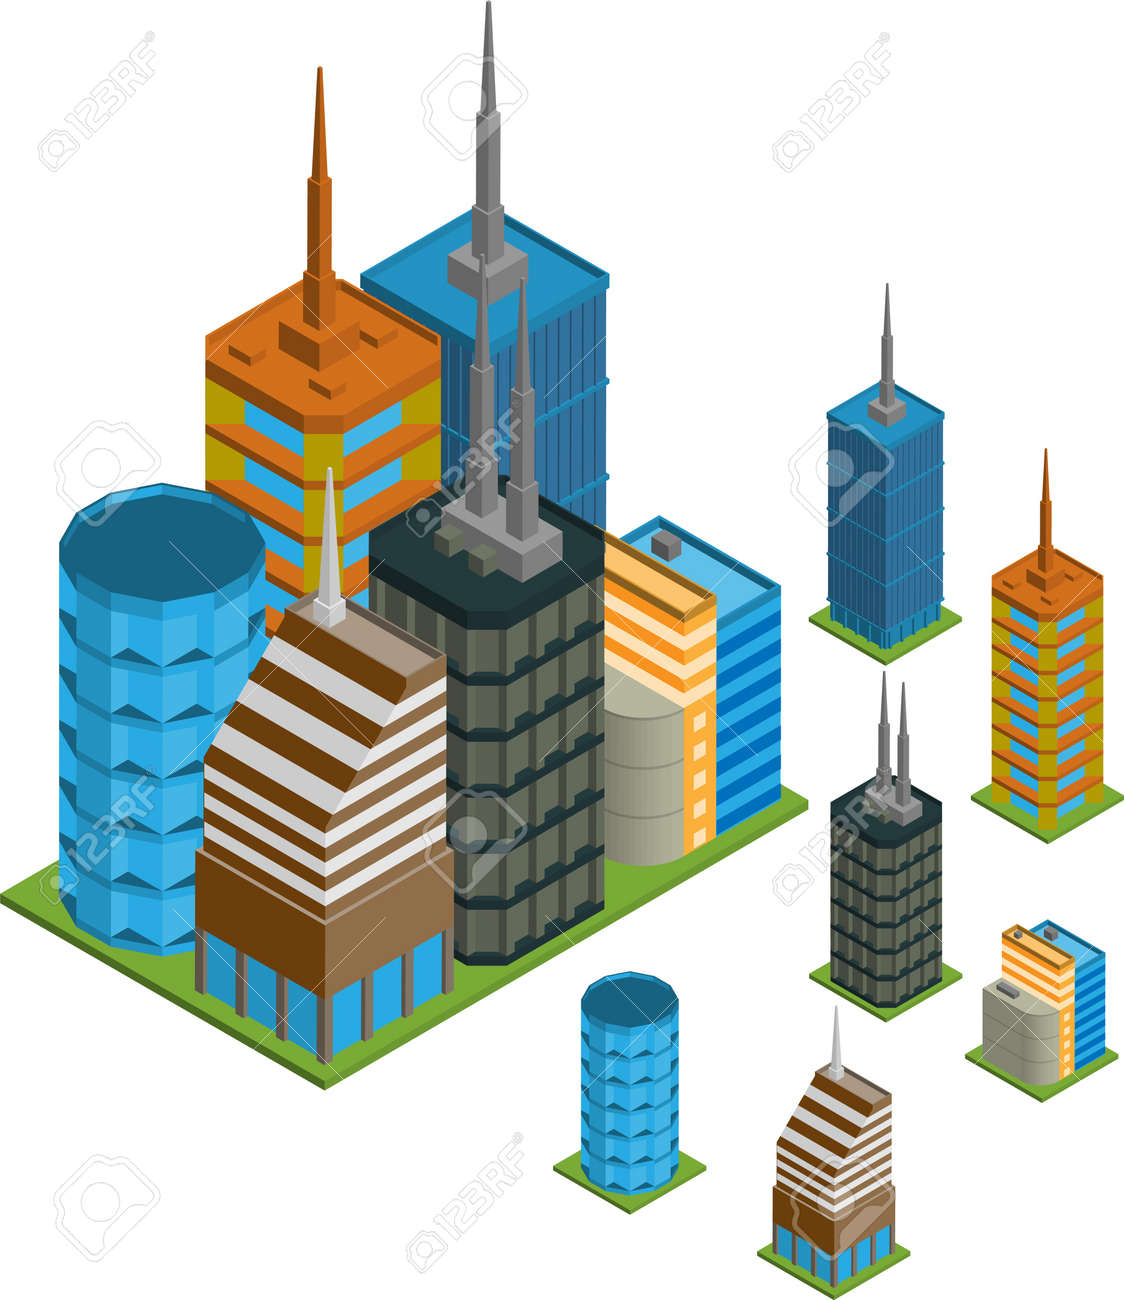 Vector pack of various isometric buildings with tiled elements, ready to use for city building game Stock Vector - 16240839